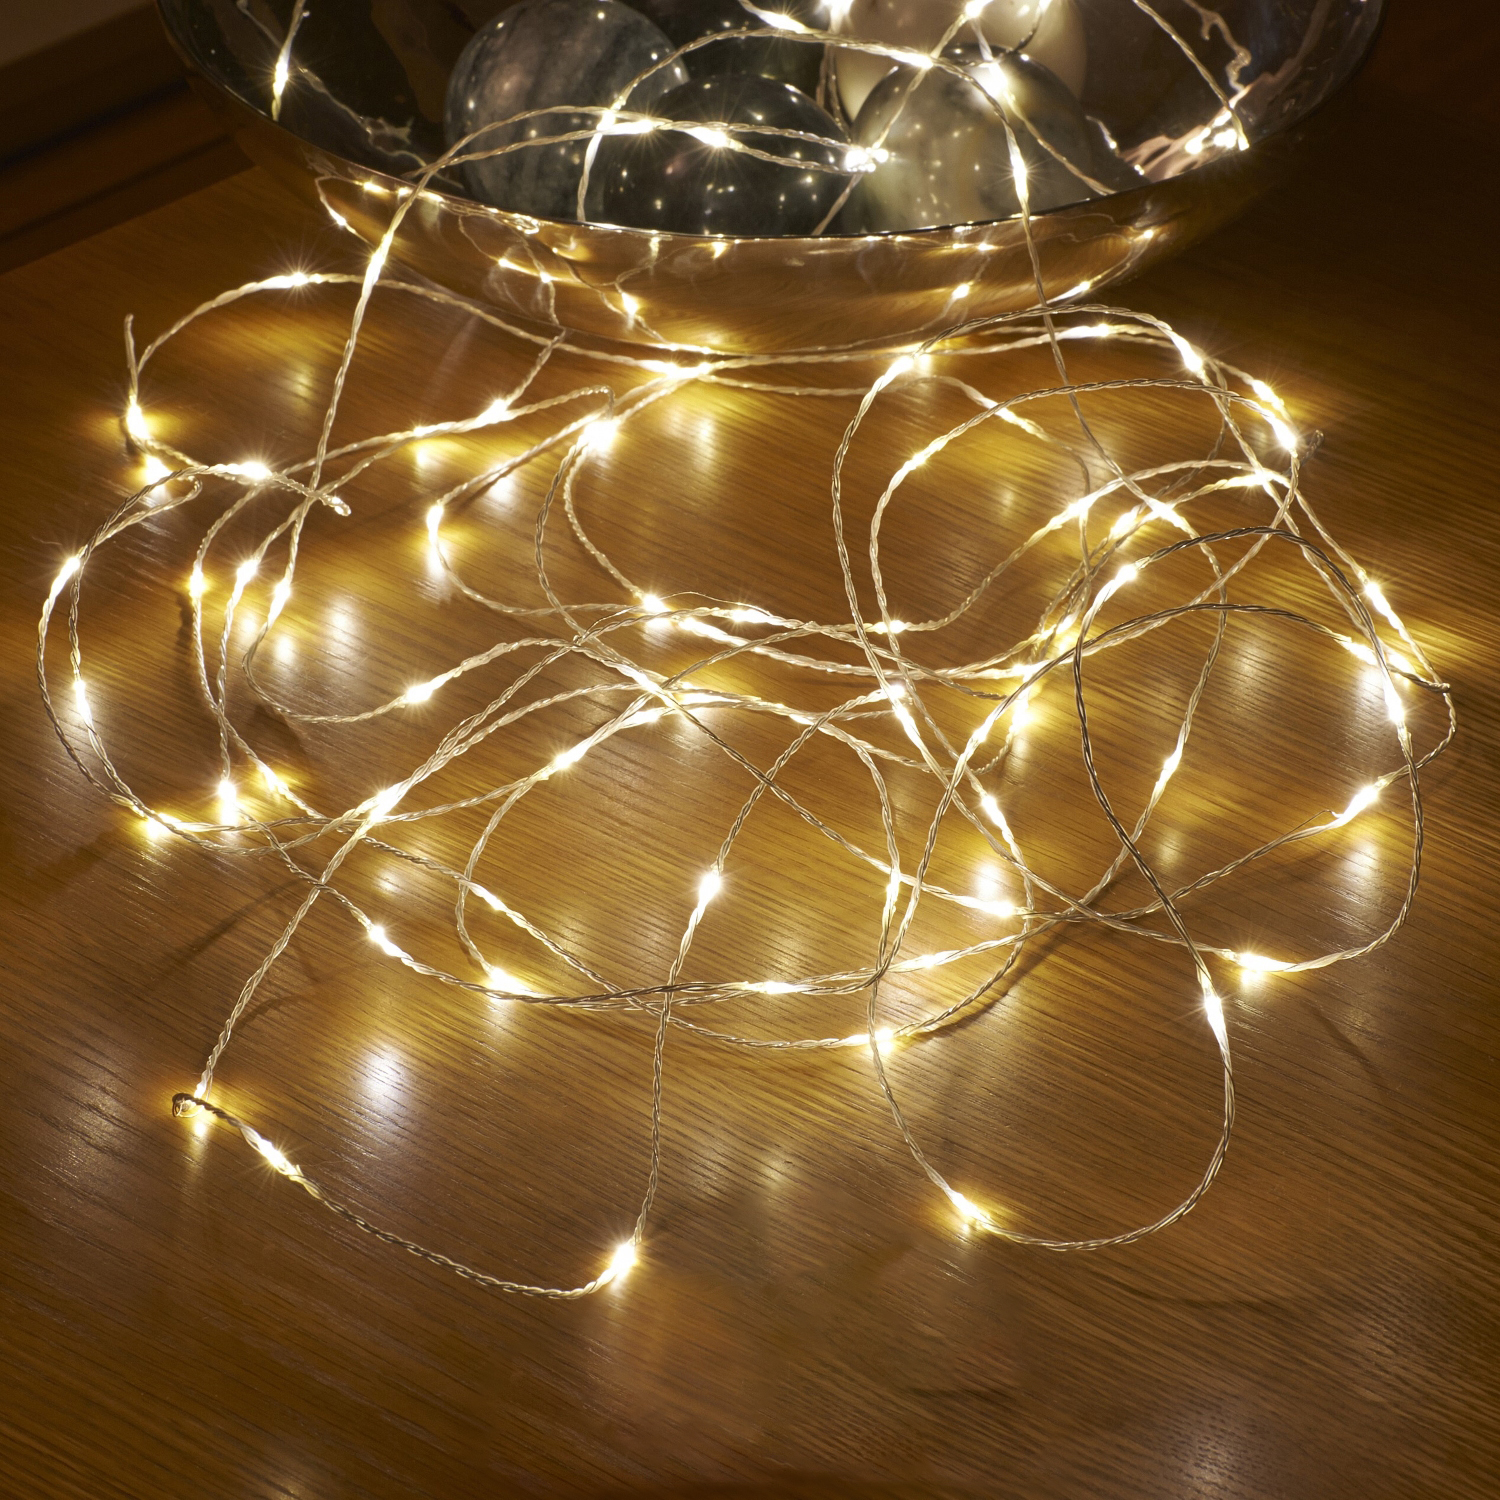 Thin Led String Lights : Micro LED String Lights - Battery Operated - Remote Controlled - Outdoor - 5M - Auraglow LED ...